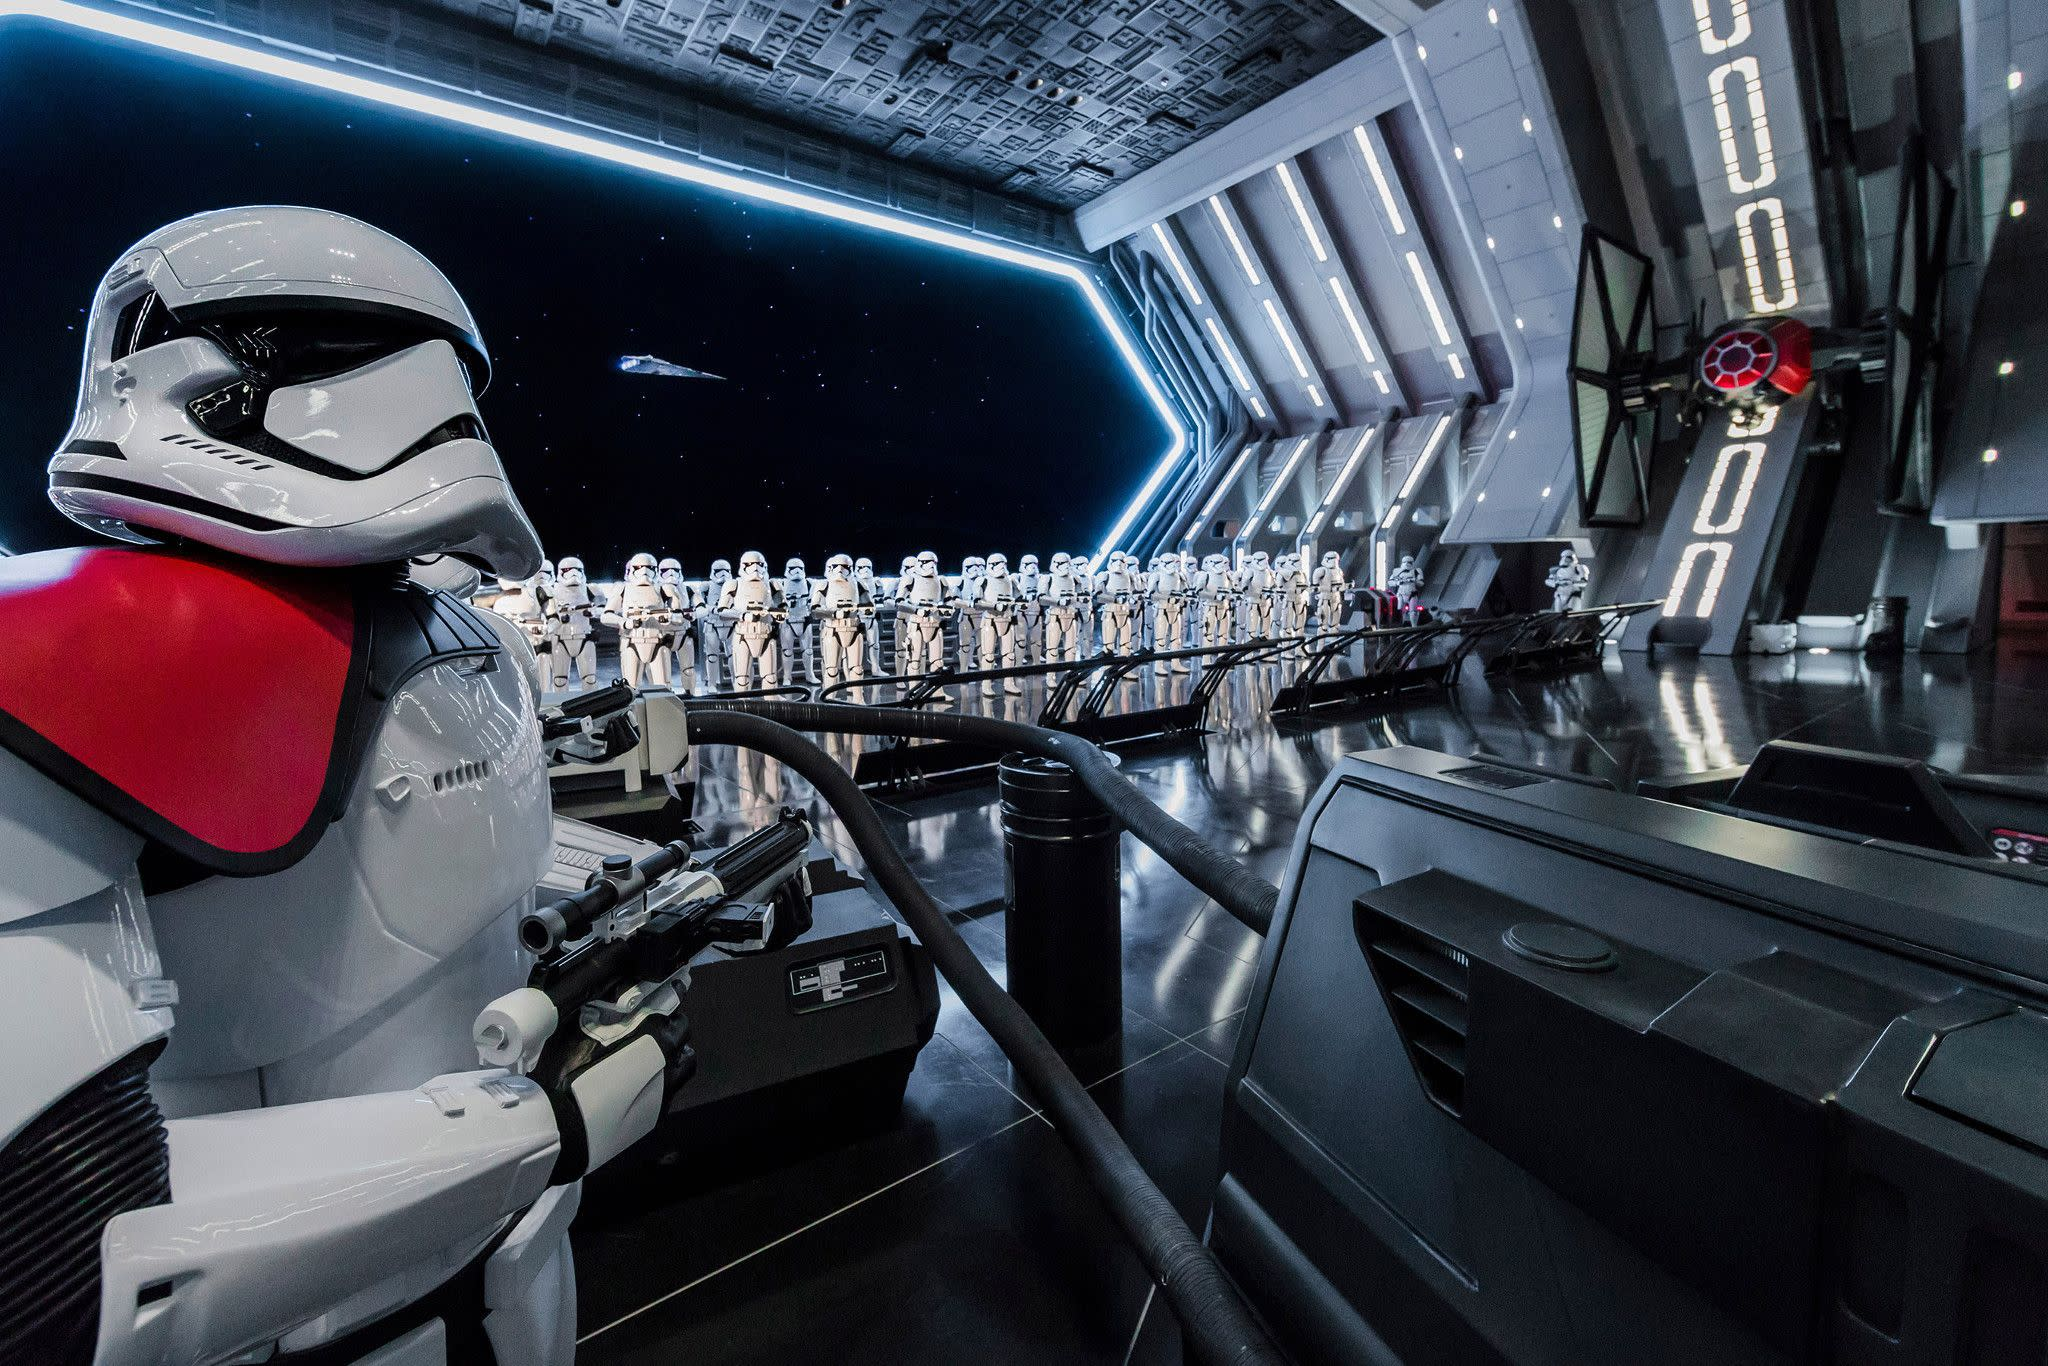 Star Wars: Rise of the Resistance at Star Wars: Galaxy's Edge at Disney's Hollywood Studios in Orlando